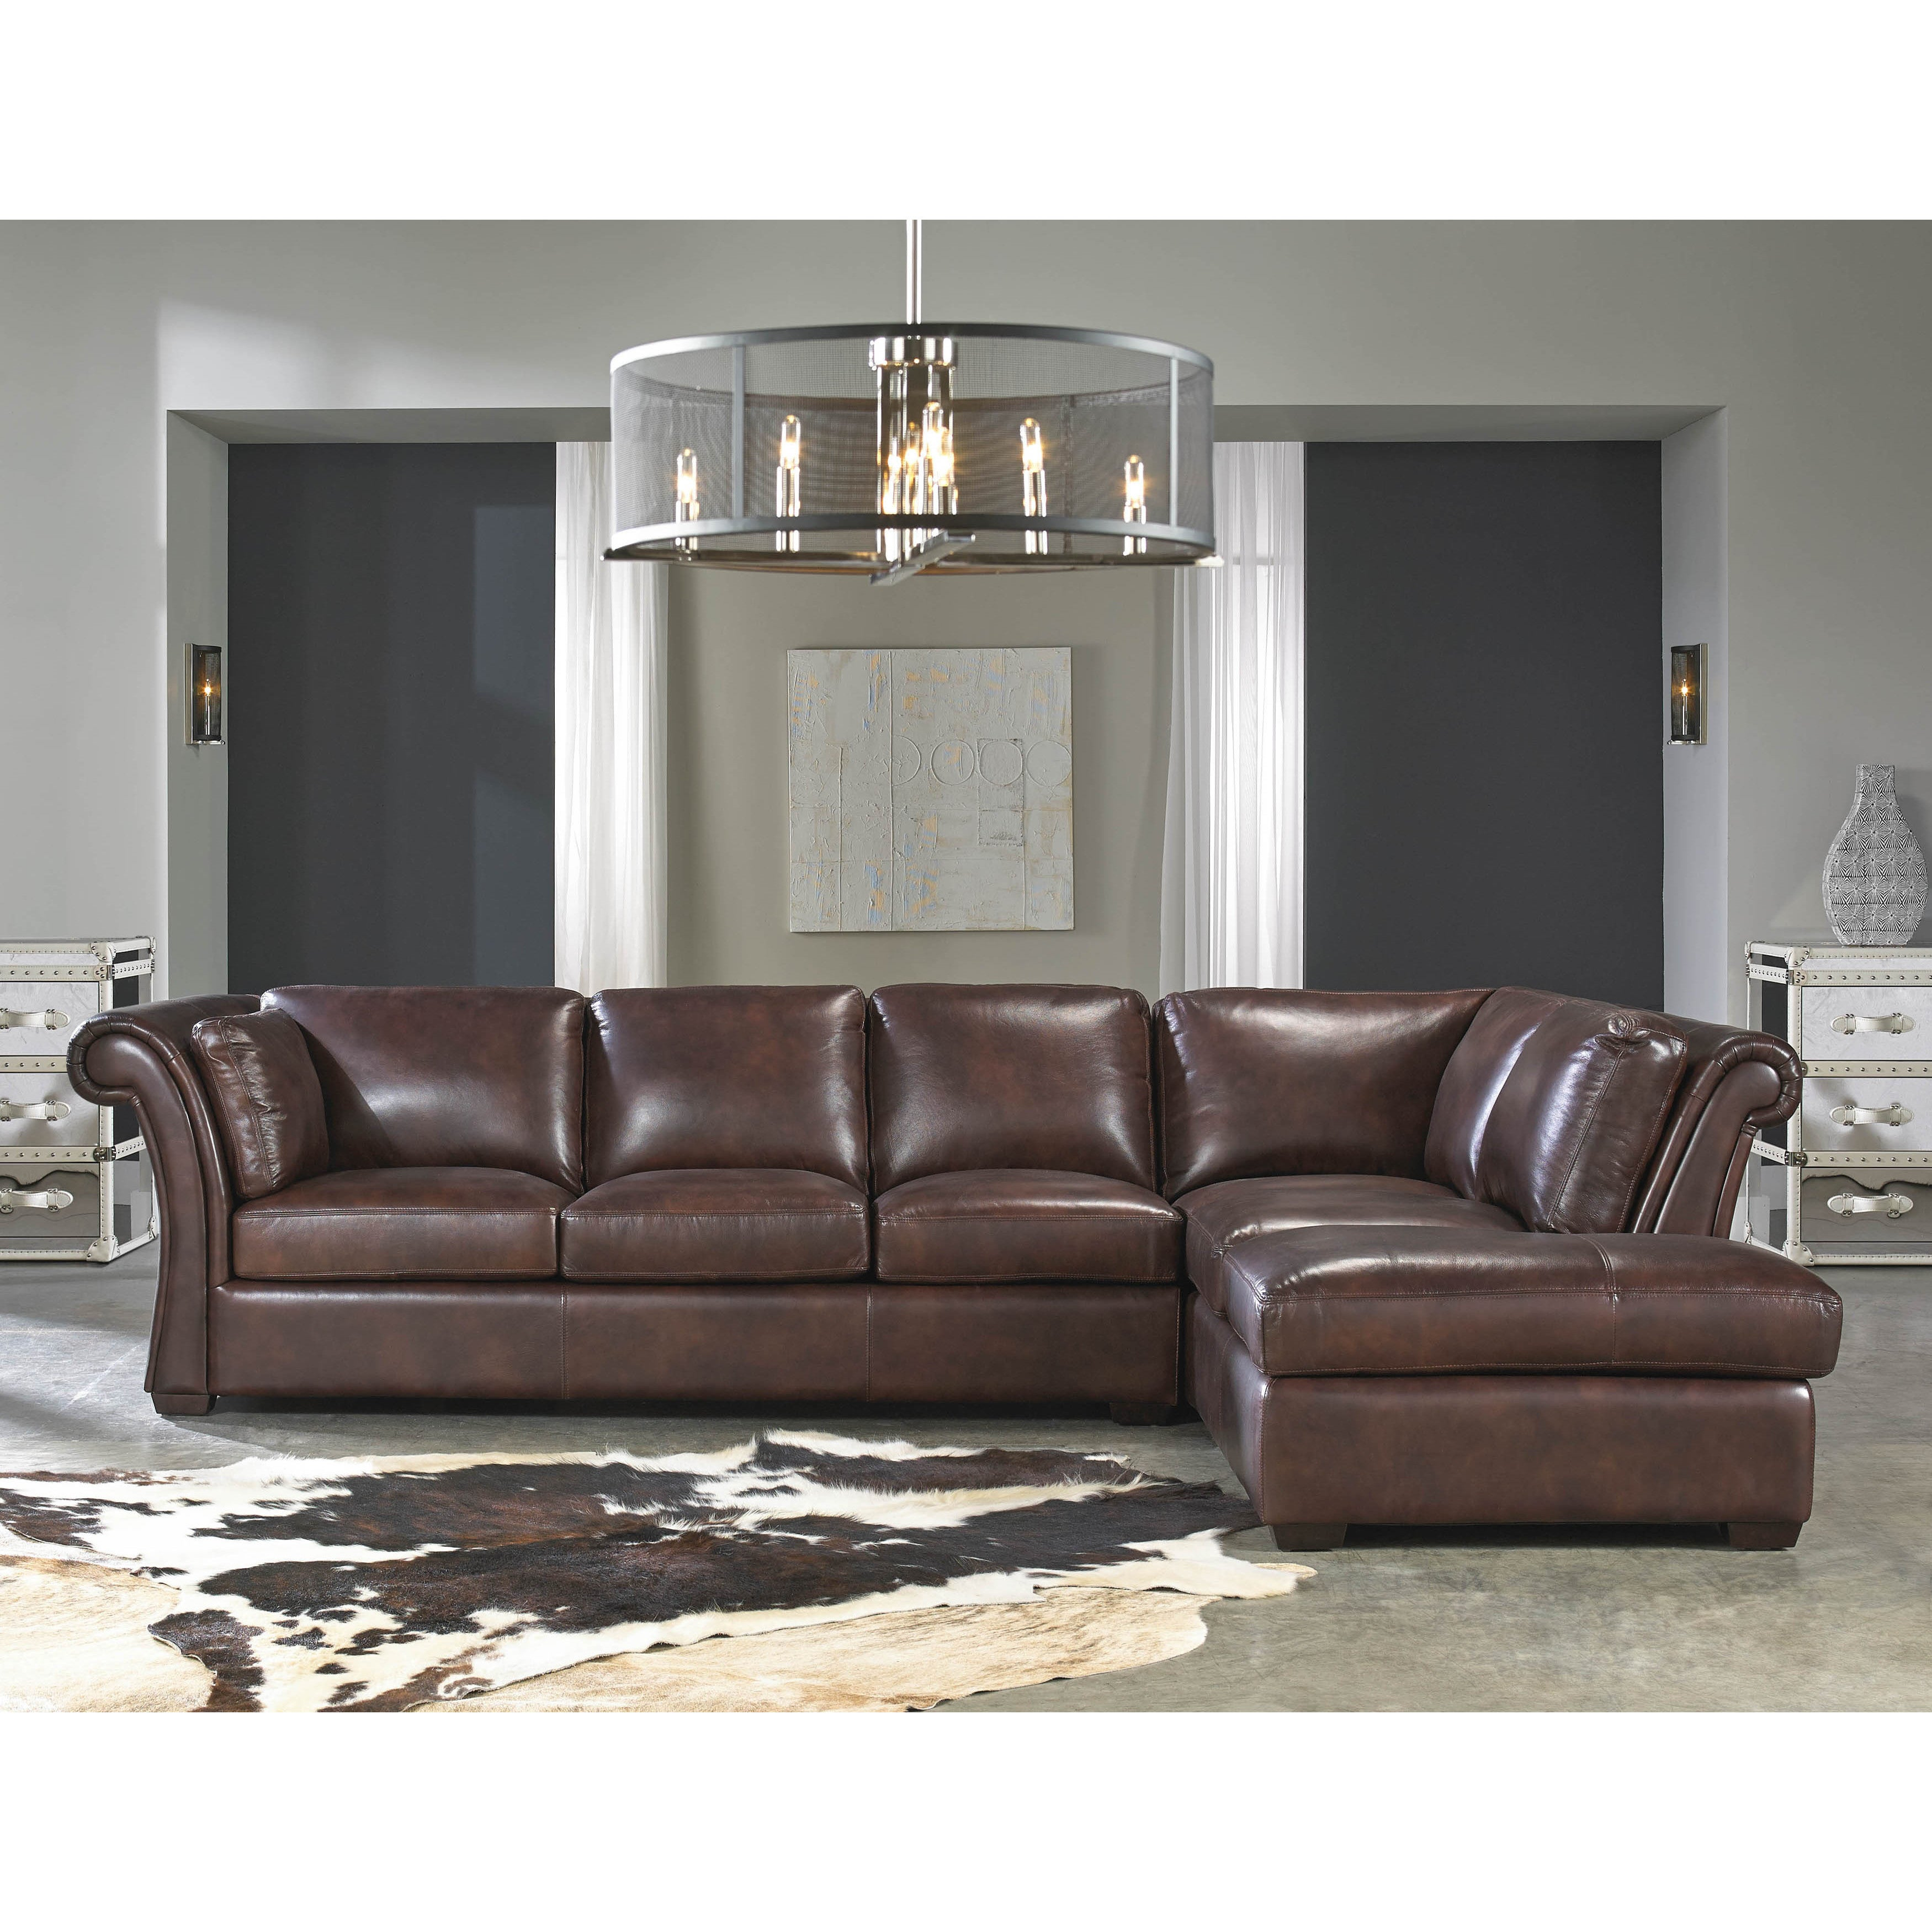 couch sectional new within leather sofas grain of photos rustic elements carlyle top